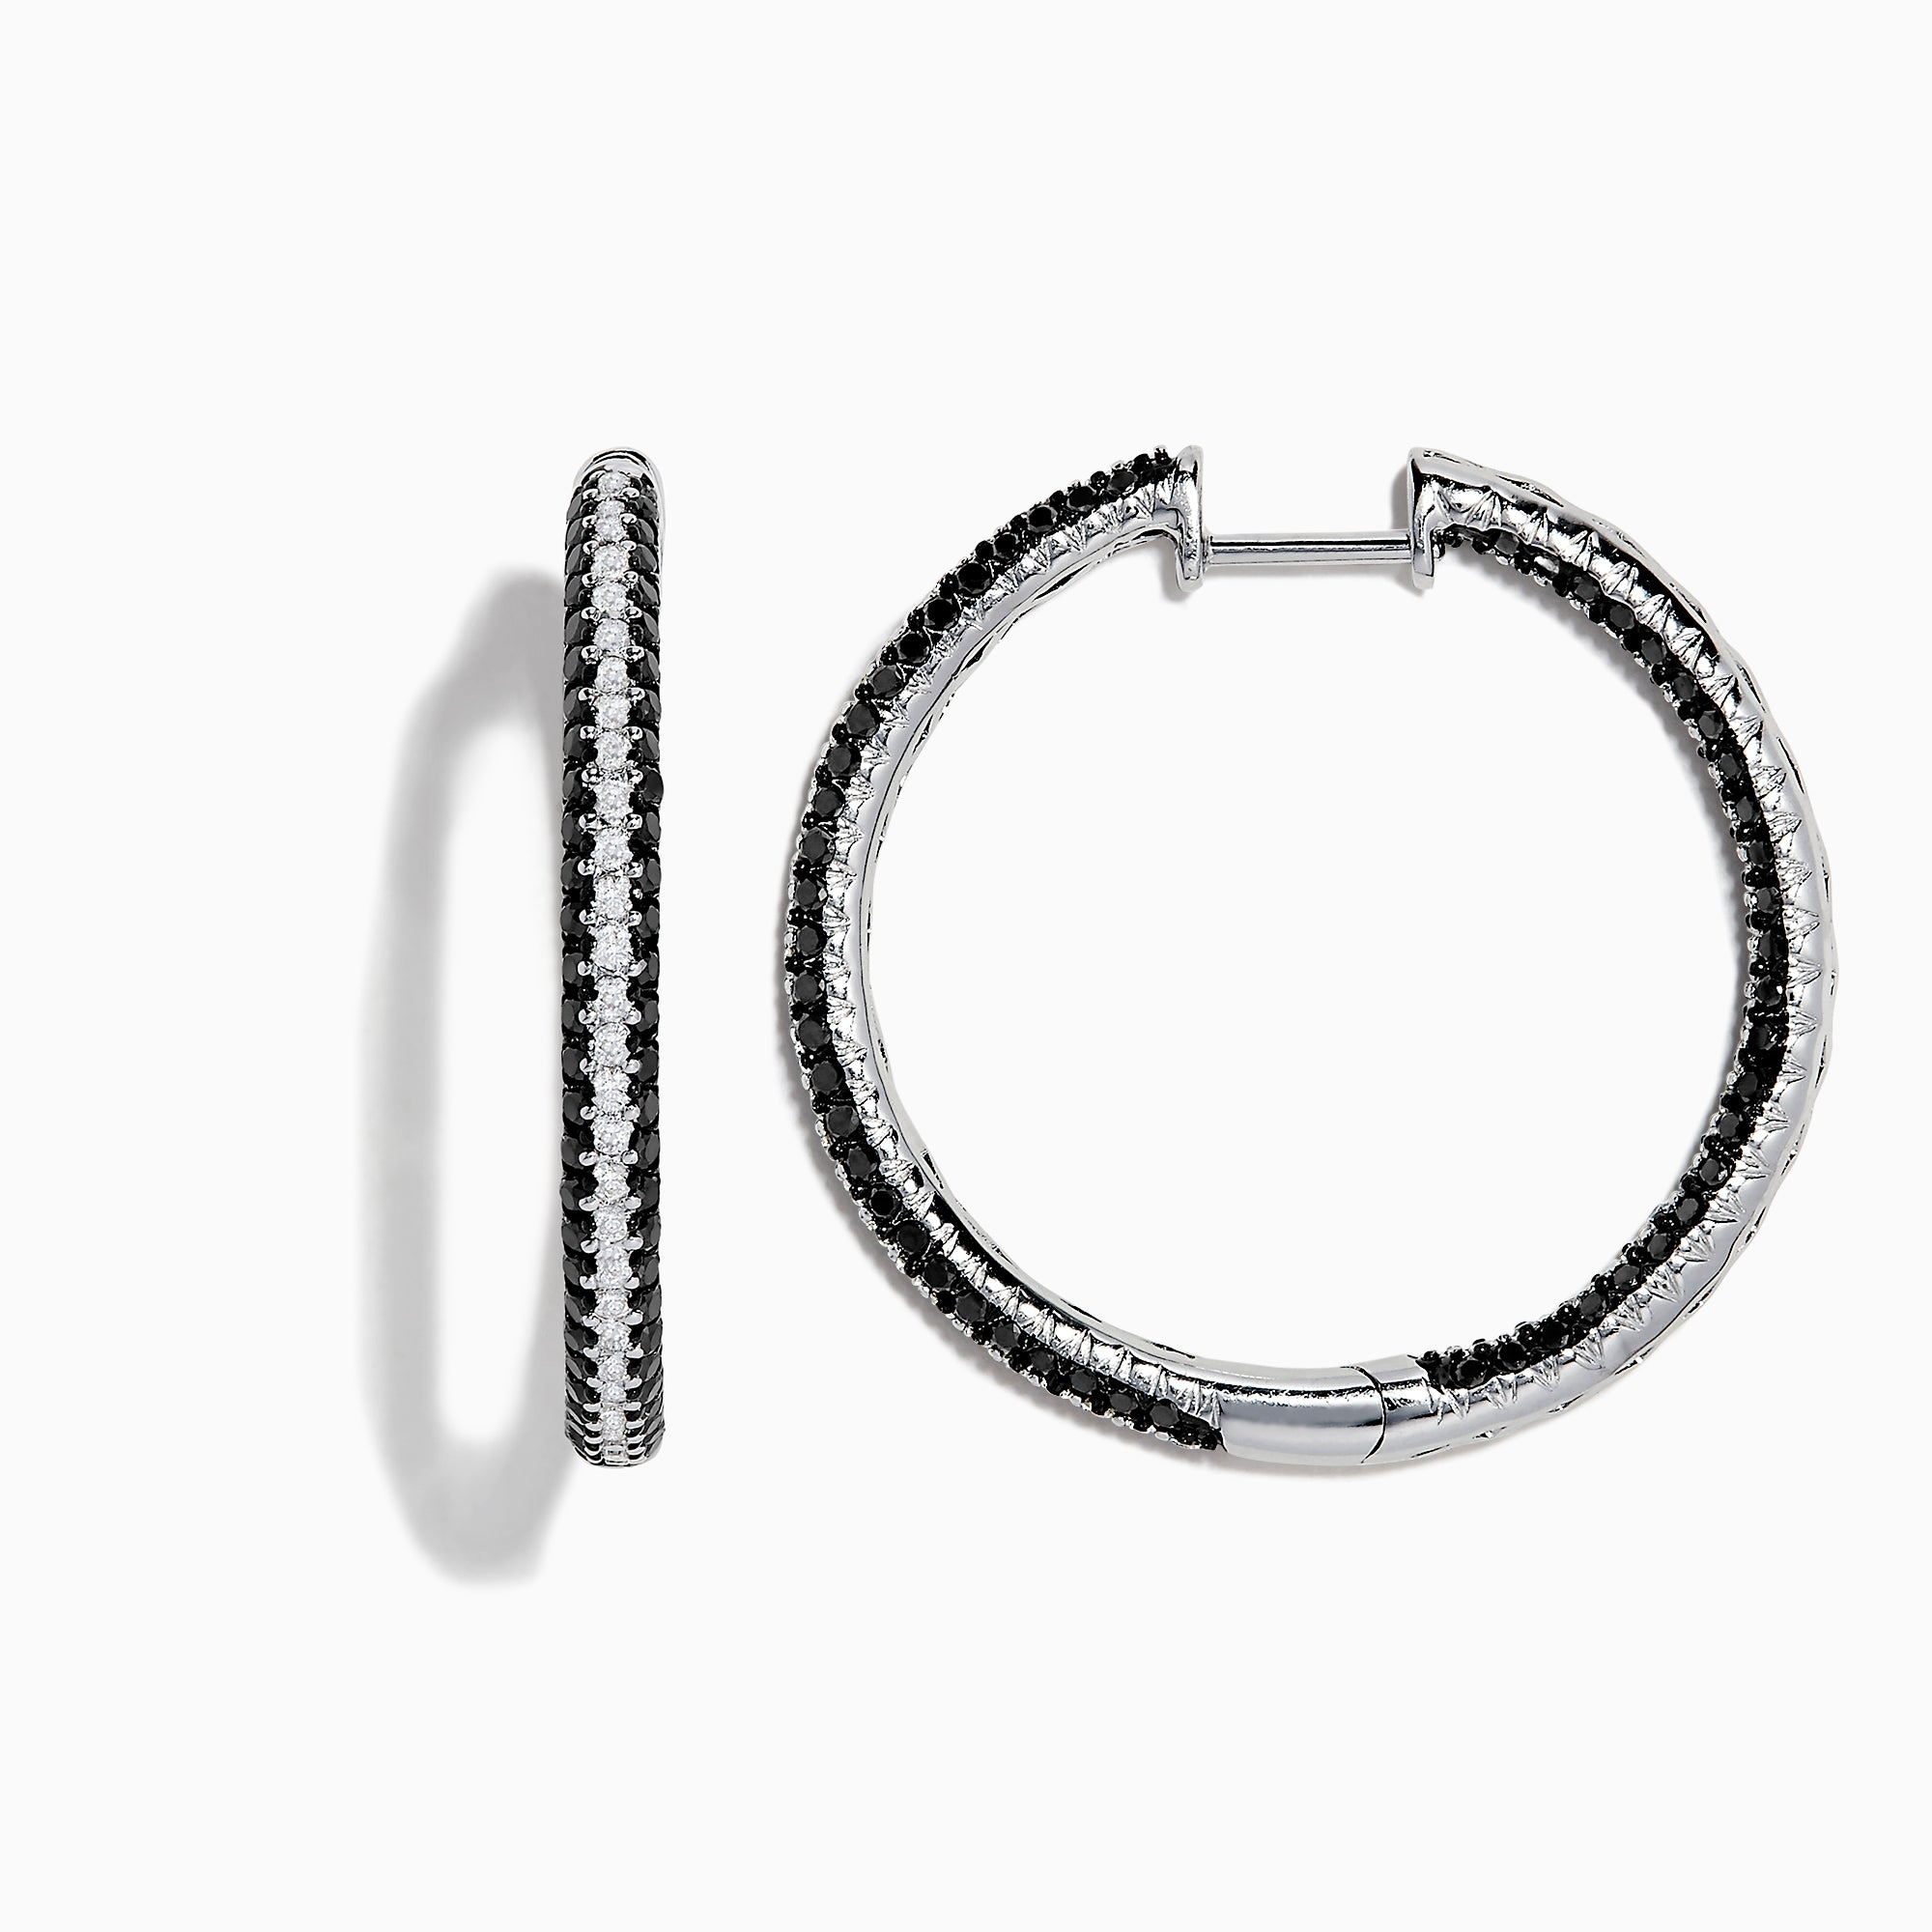 Effy 14K White Gold Black and White Diamond Hoop Earrings, 2.04 TCW